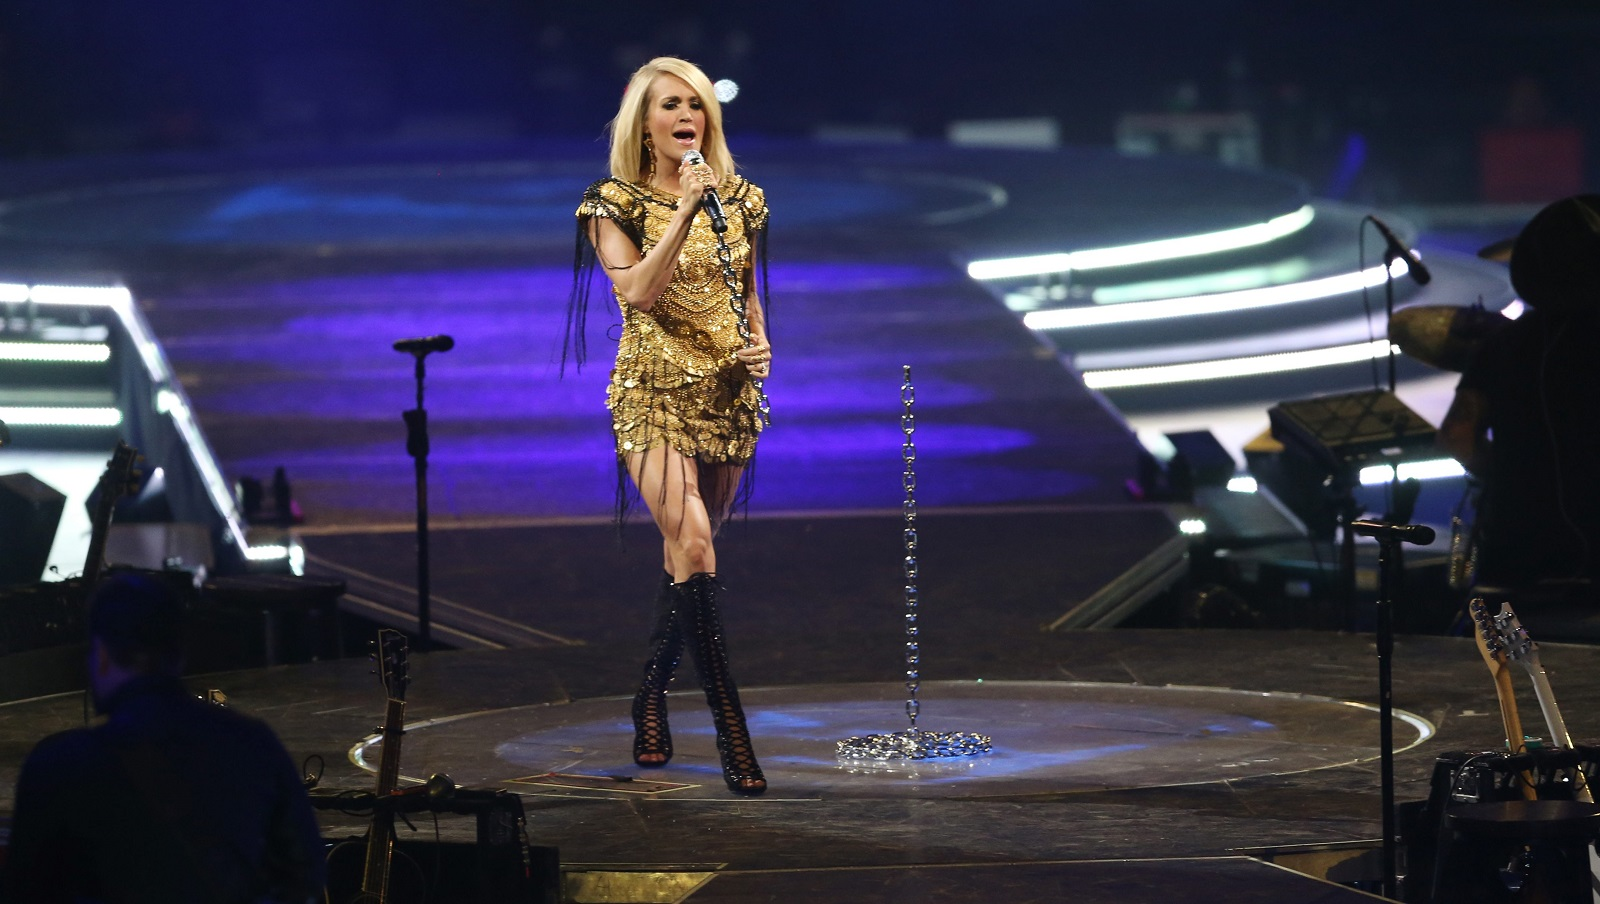 Carrie Underwood headlines The Story Teller Tour at First Niagara Center. (Sharon Cantillon/Buffalo News)